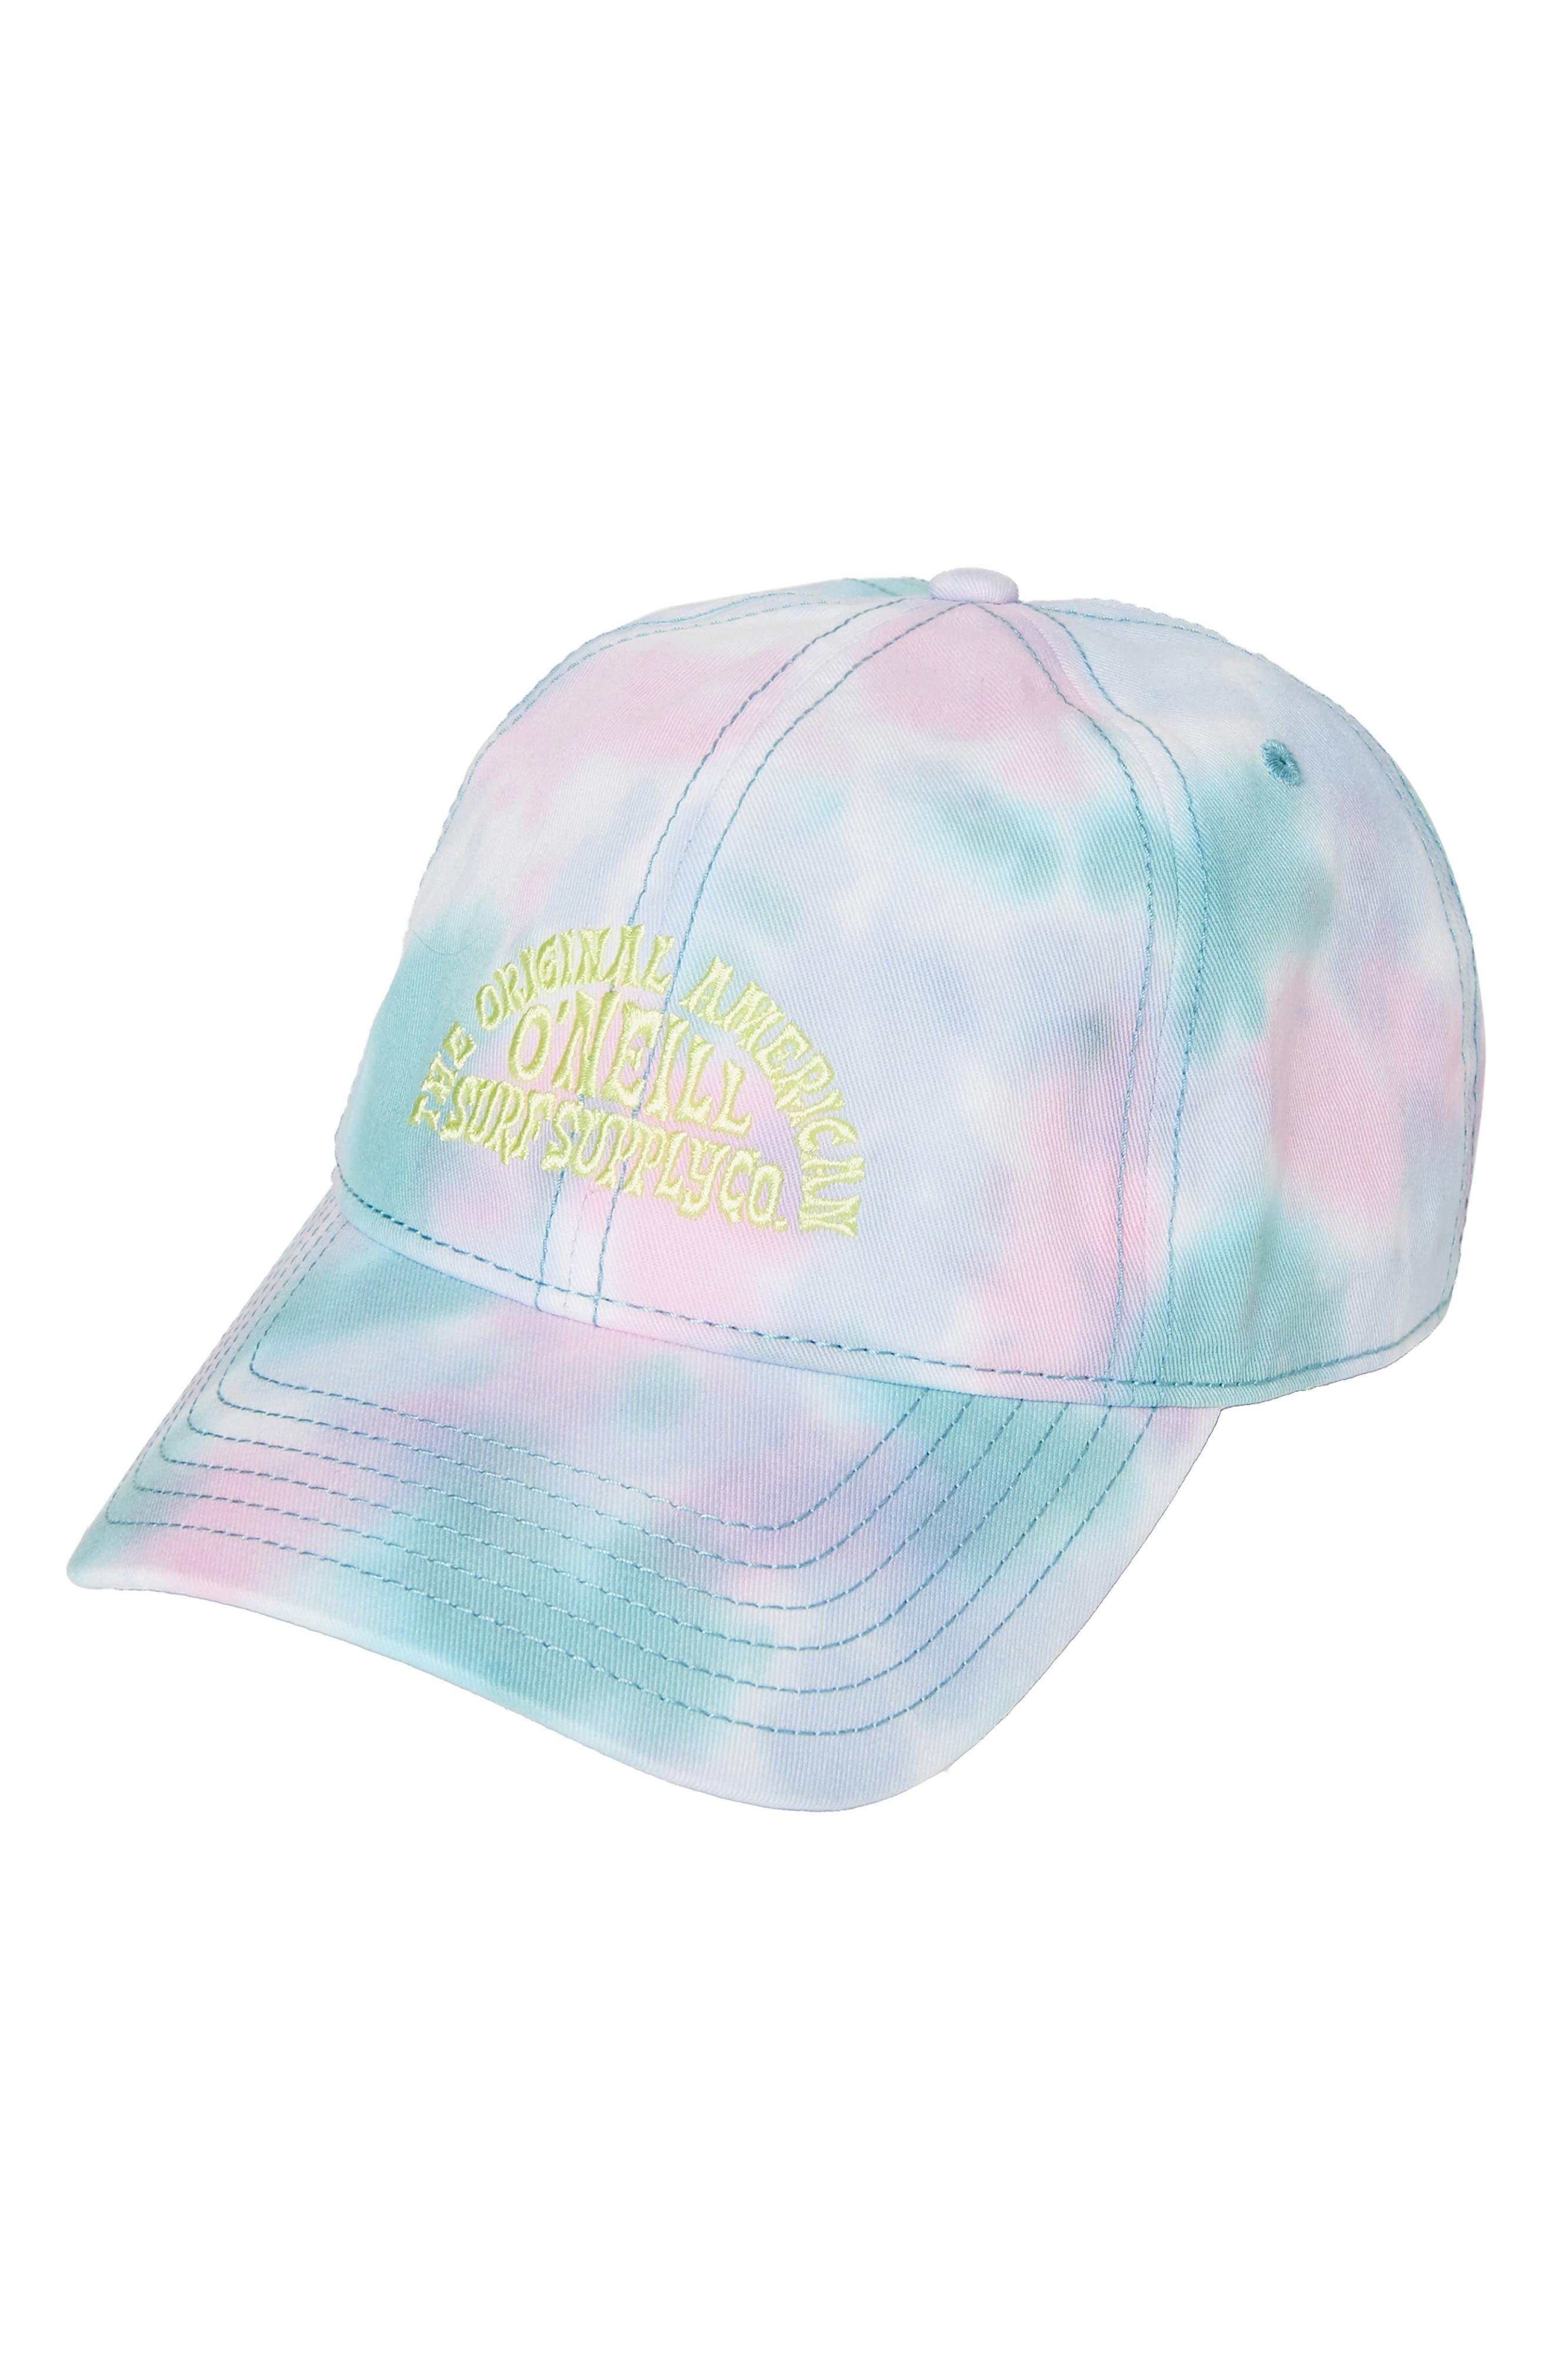 A tie-dye pattern adds undeniable retro appeal to this cute and casual baseball cap. Style Name:O\\\'Neill Drop In Tie Dye Baseball Cap. Style Number: 5995582. Available in stores.